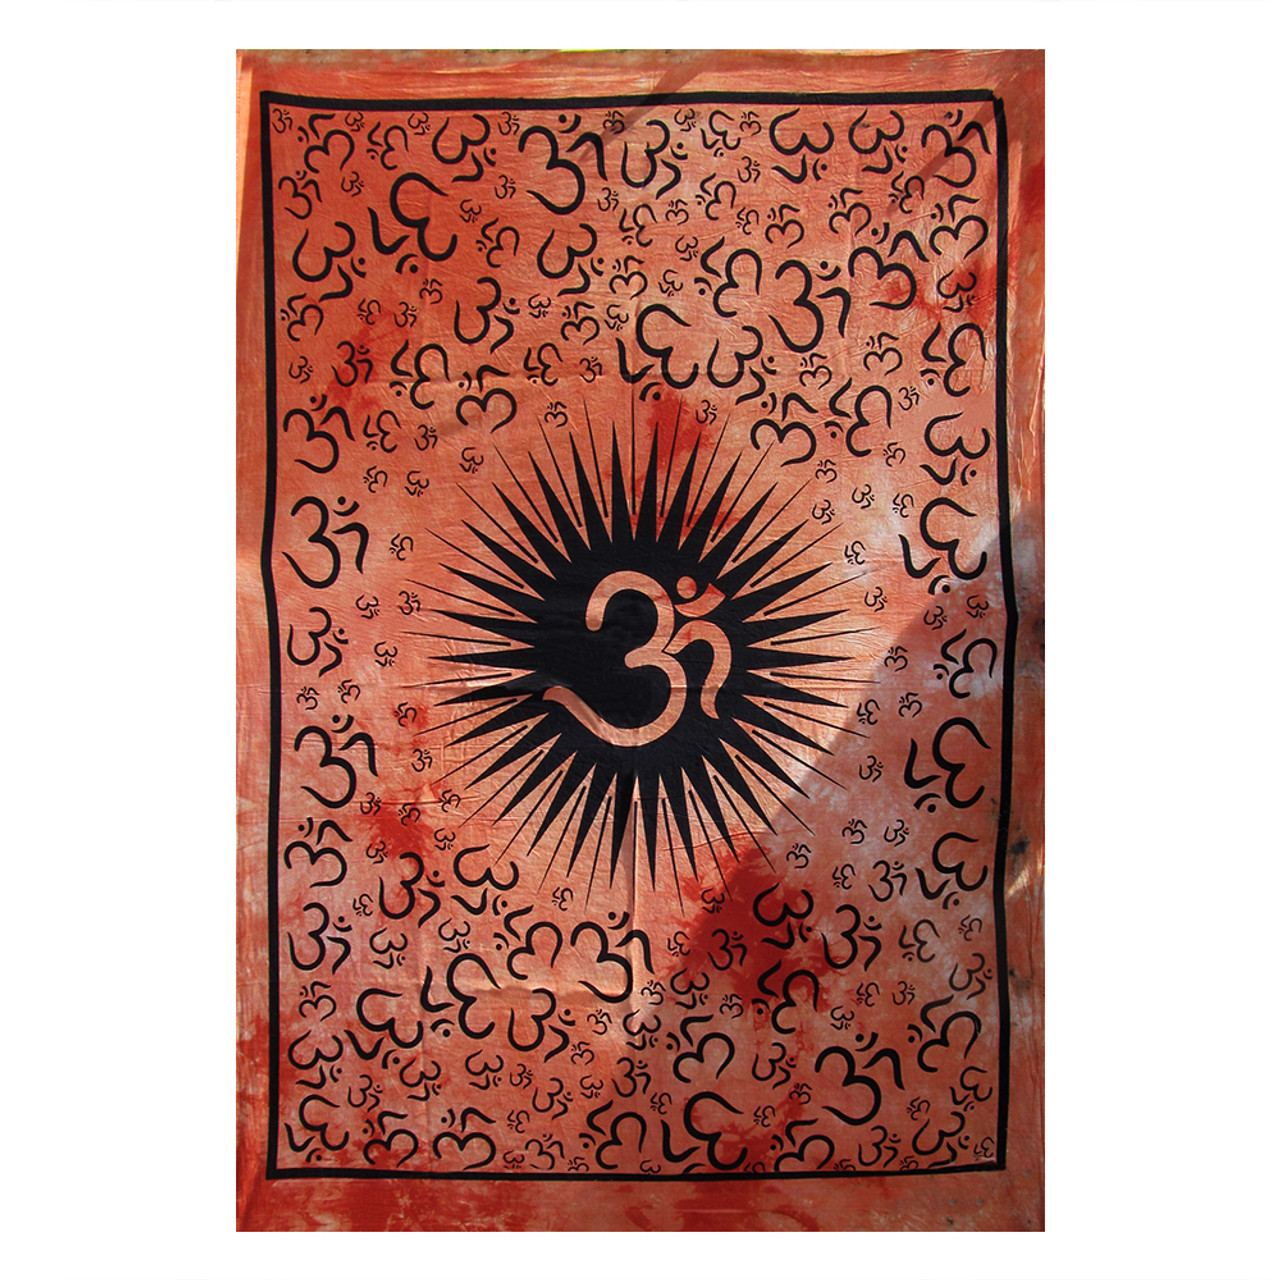 Indian Handmade Cotton Om Yoga Mat Tapestry Ethnic Poster Size Table cover Decor